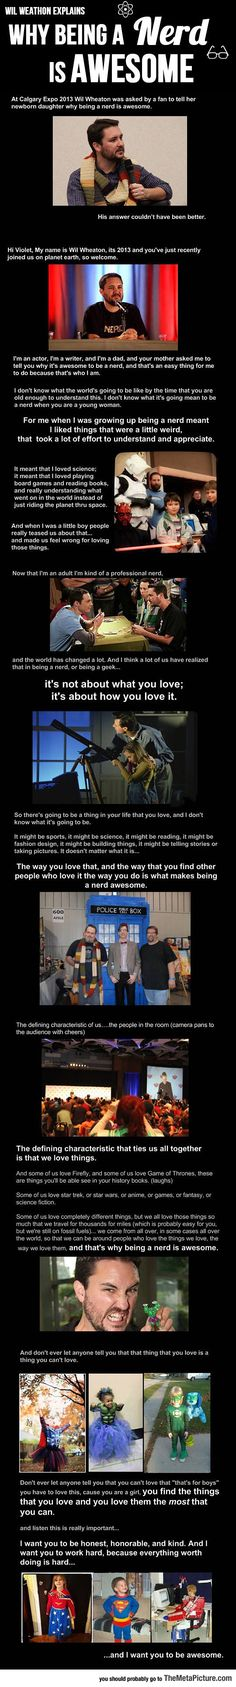 Why Being A Nerd Is Awesome - The Meta Picture